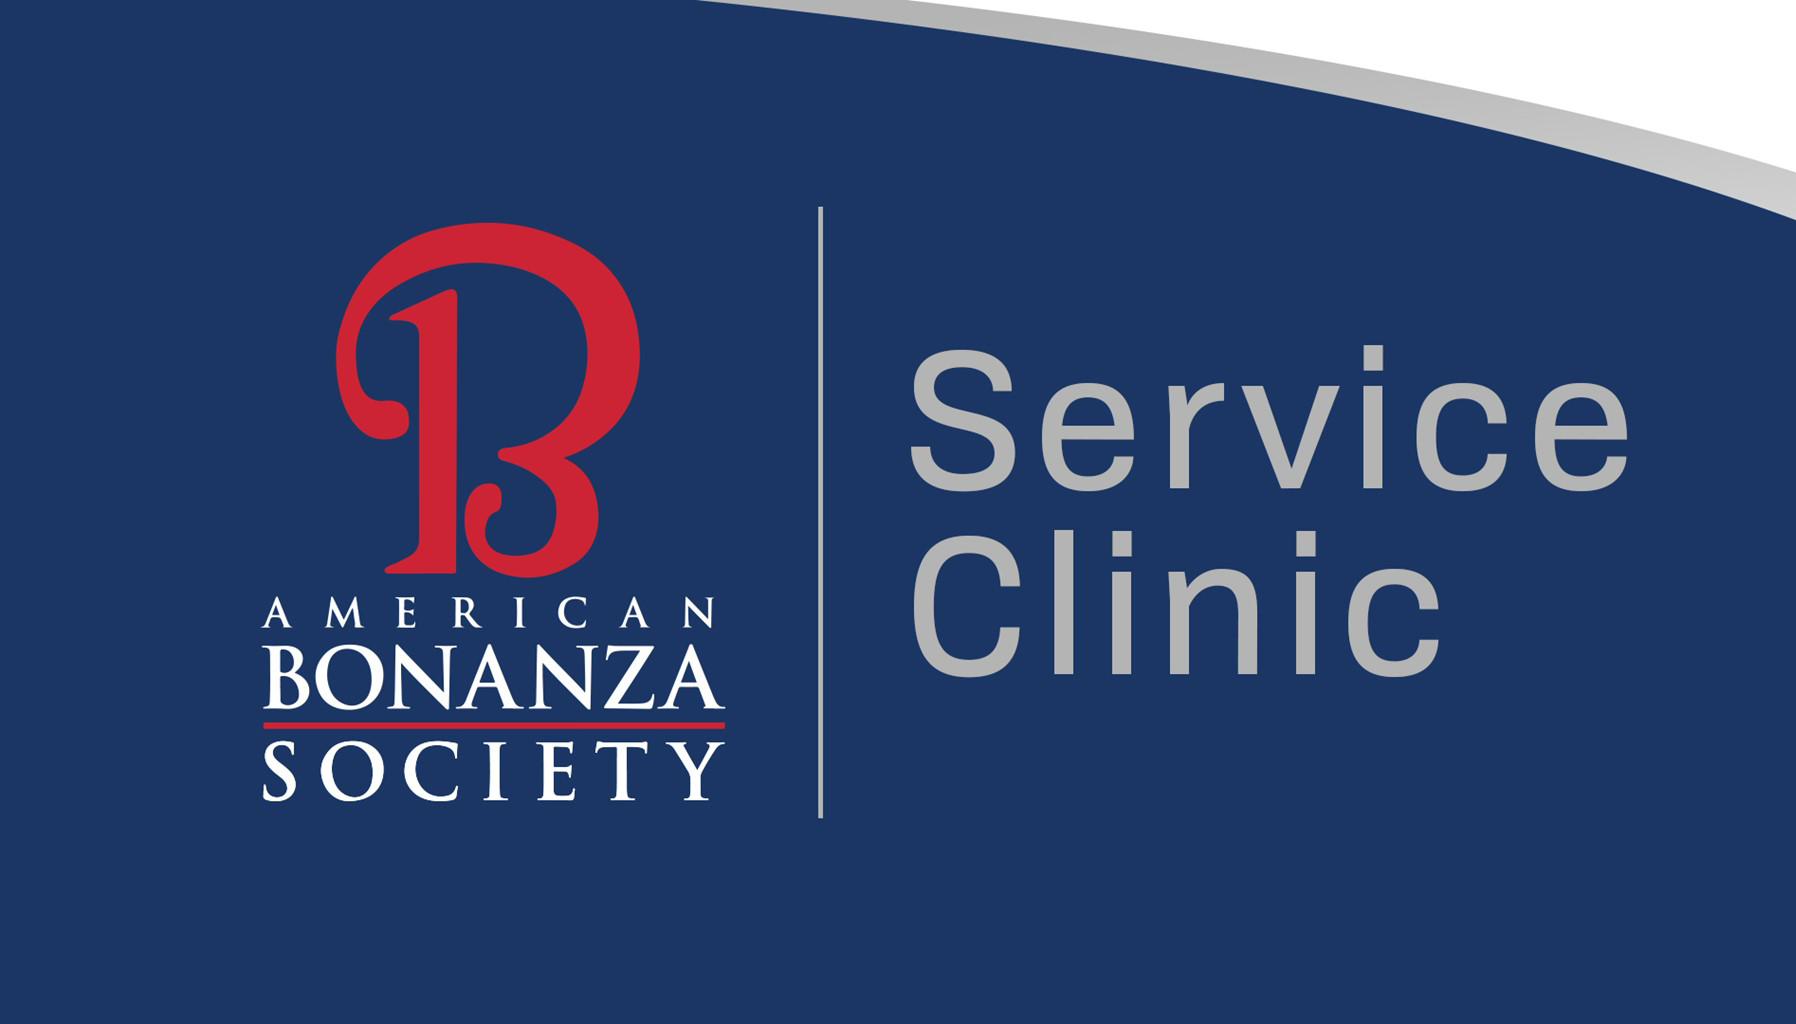 Beaver Air Services is a proud host of the American Bonanza Society Service Clinic [DWH]